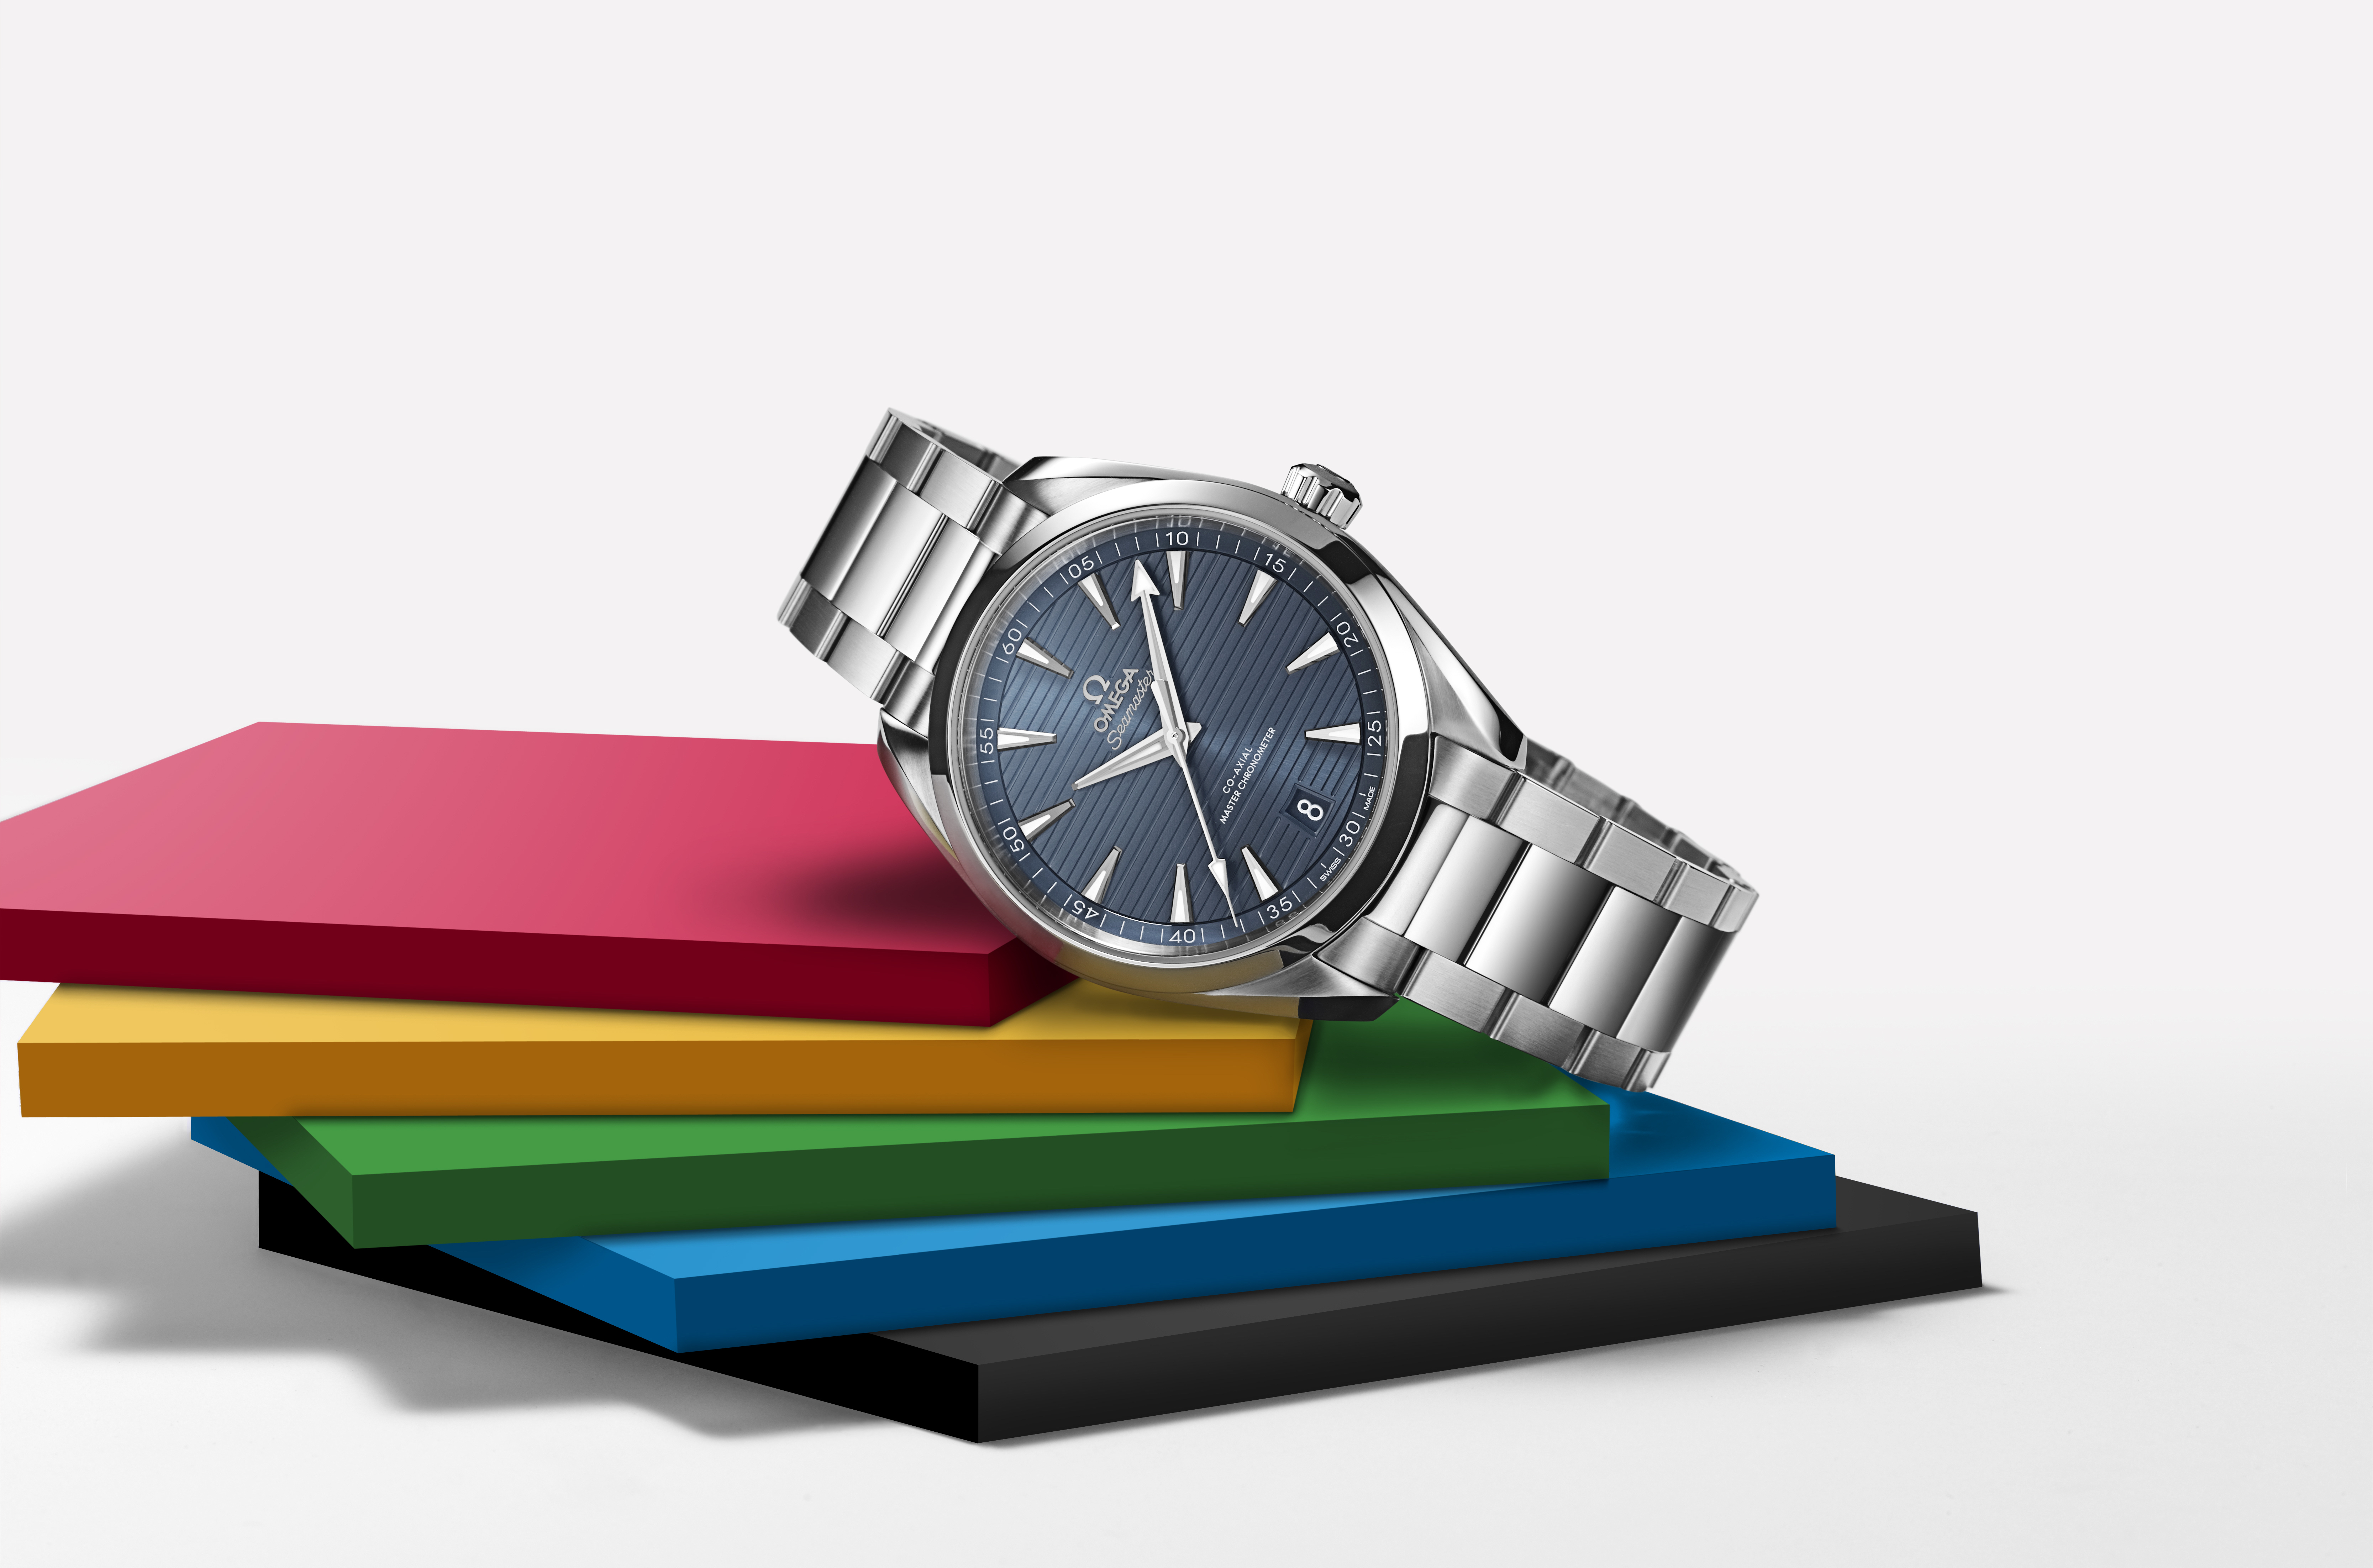 Omega limited edition Olympics watch_06152019